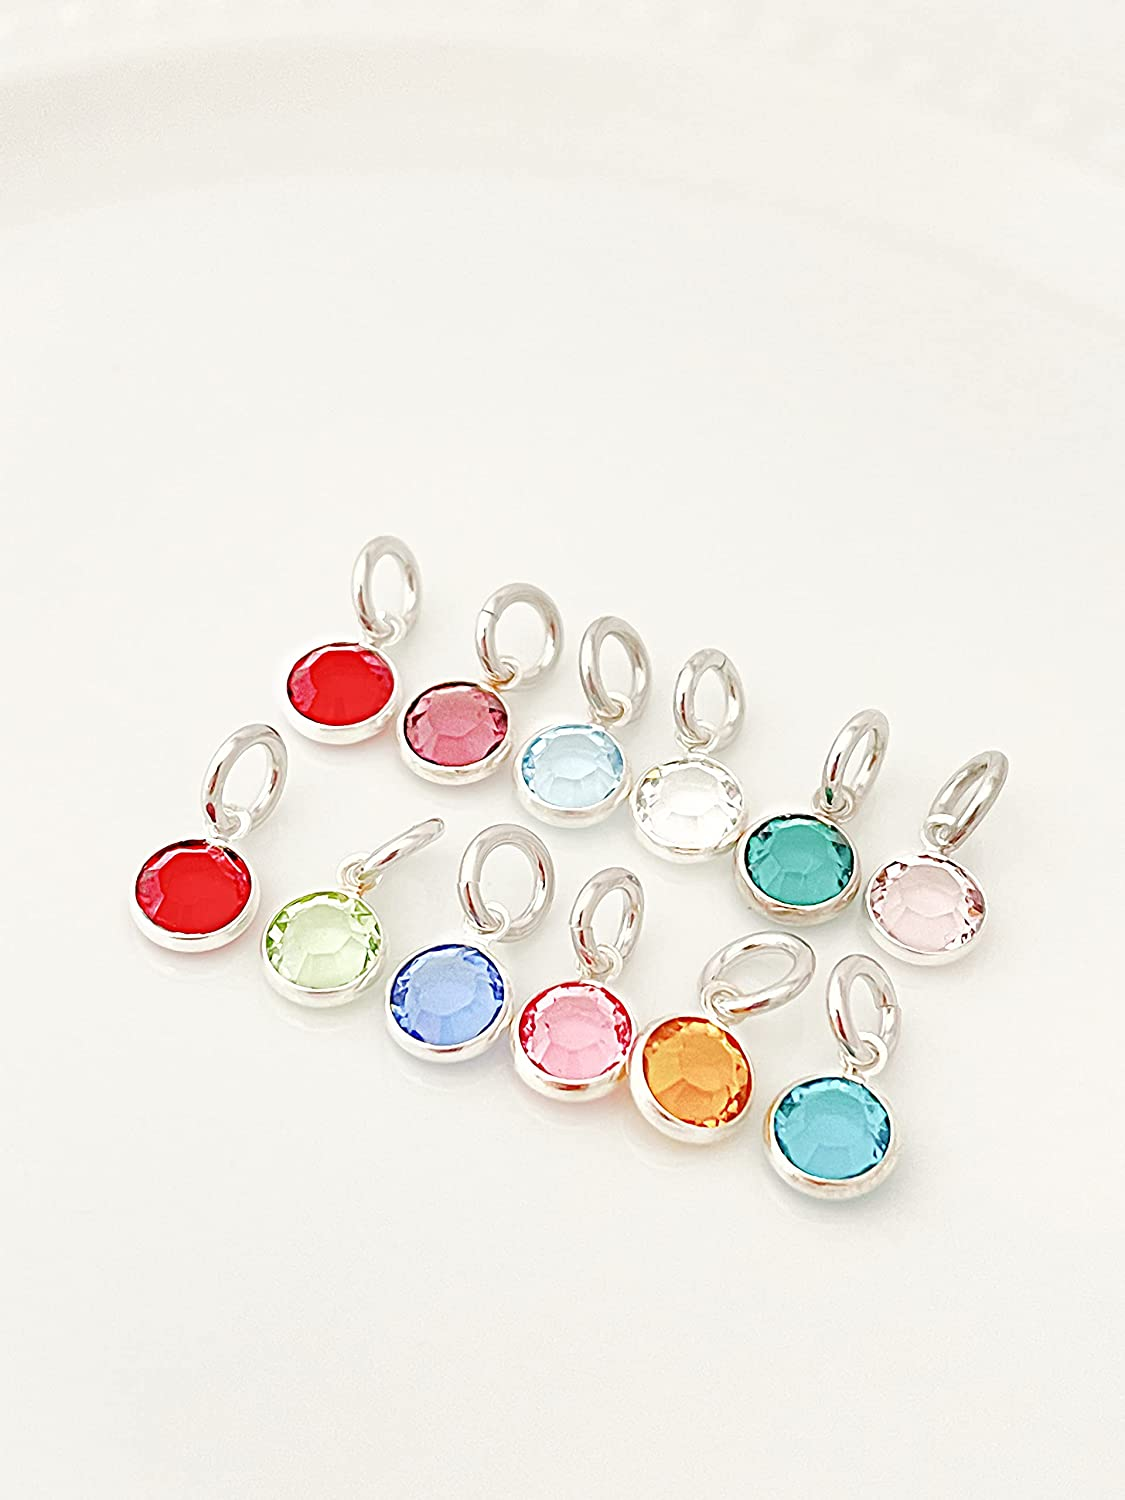 Birthstone 67% OFF of fixed price Charm With Jump Ring - Swaro 6mm Add Round On Max 43% OFF